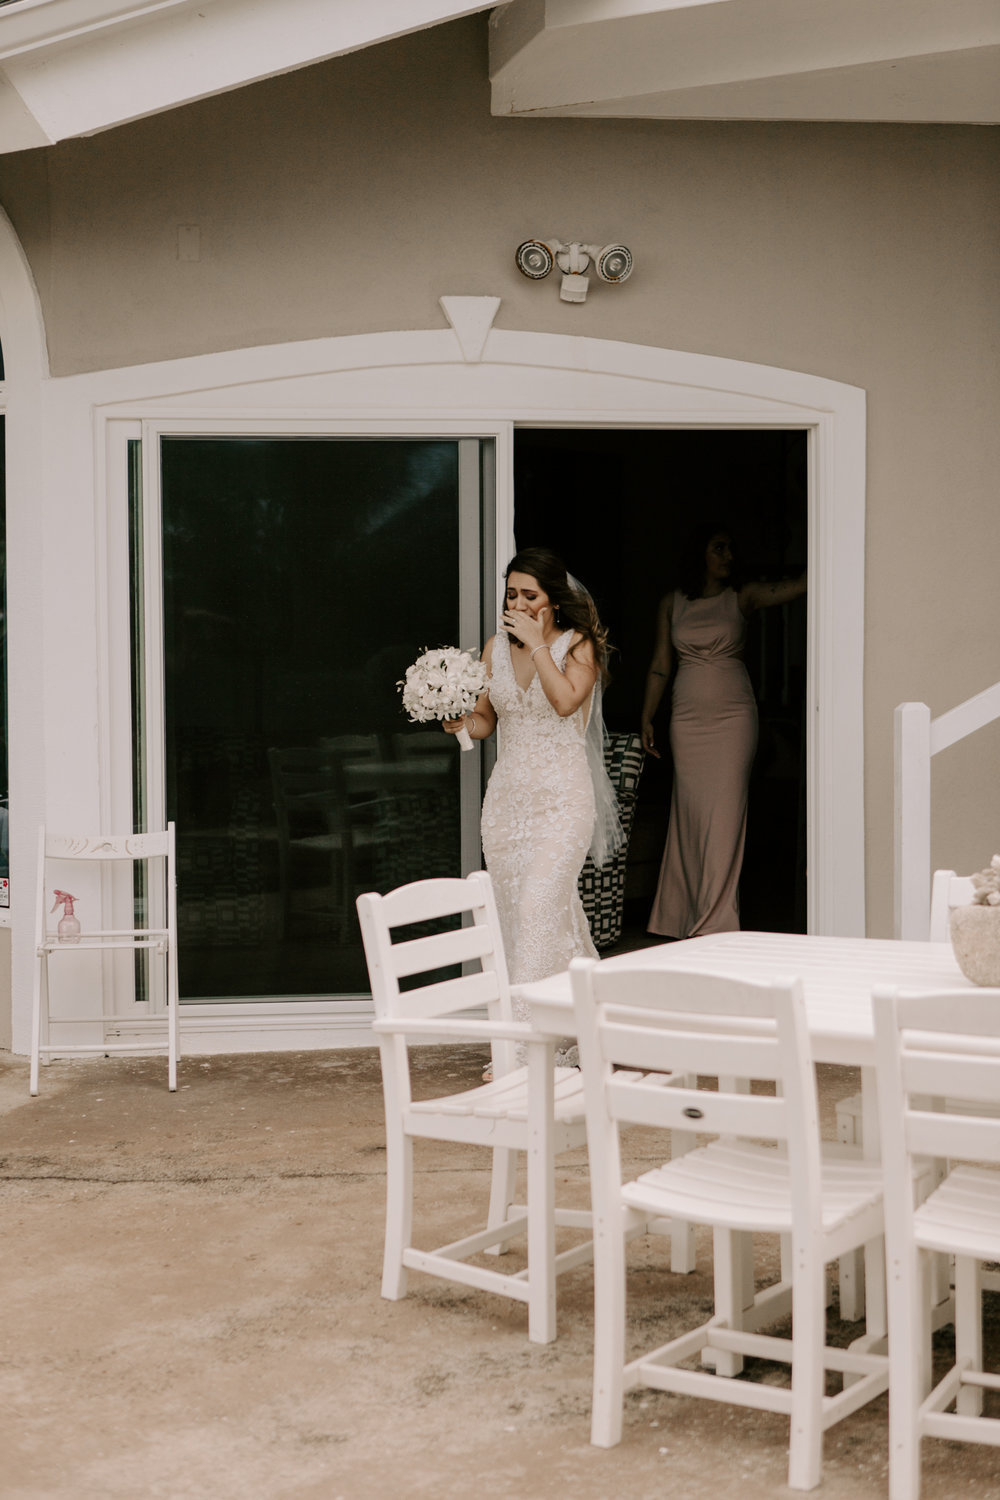 Bride seeing the groom for the first time